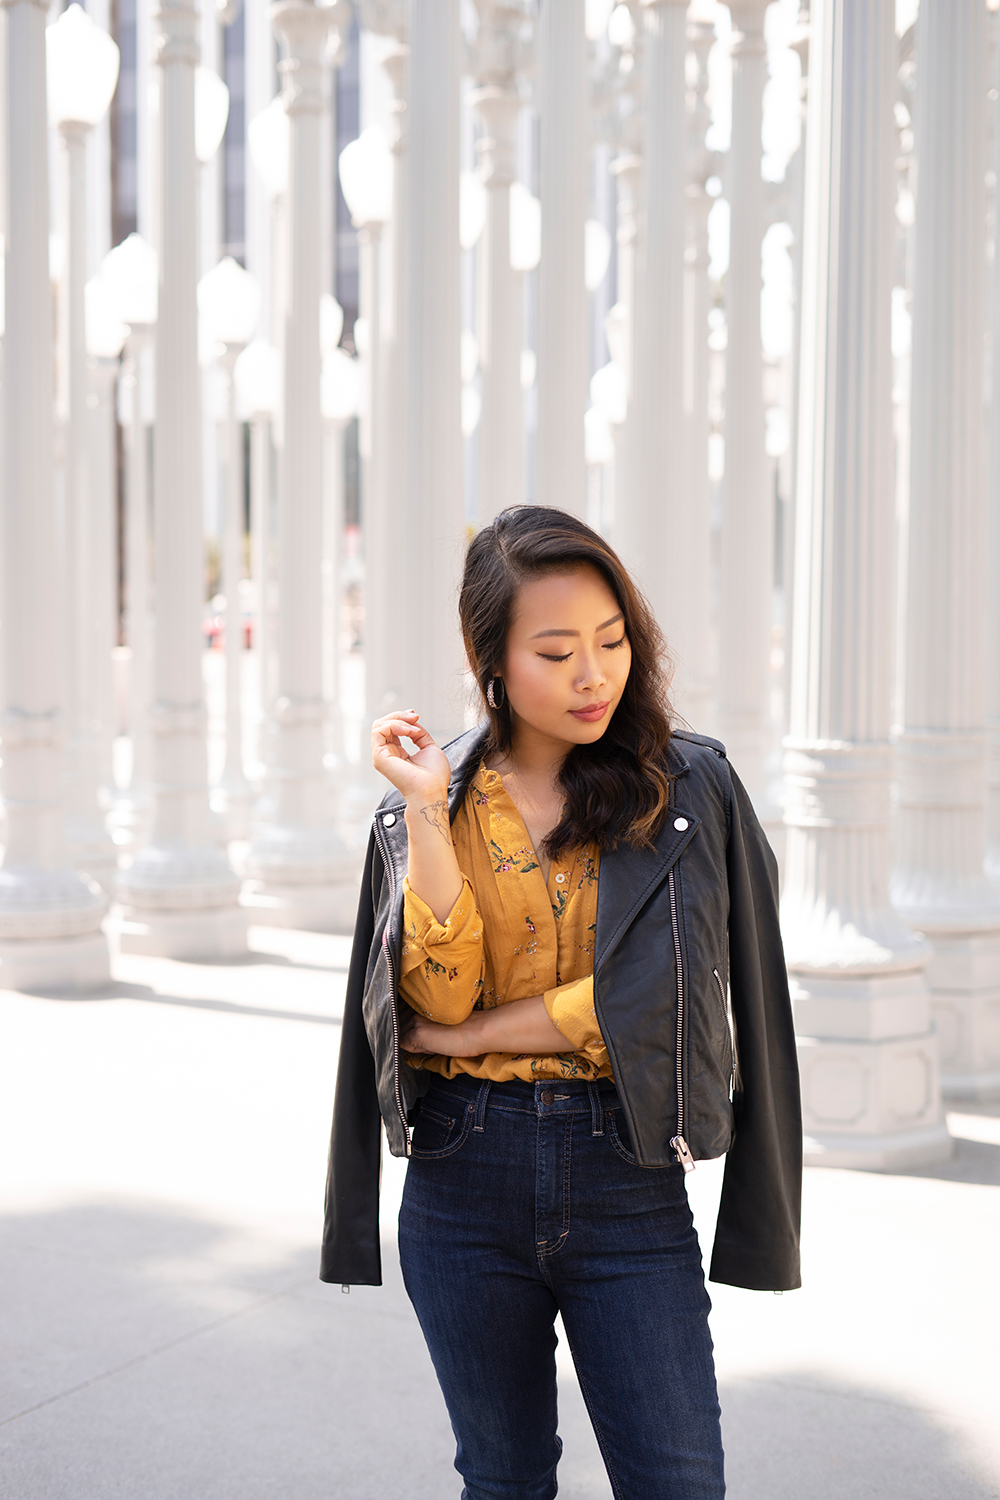 03-luckybrand-denim-jeans-leatherjacket-lacma-urbanlights